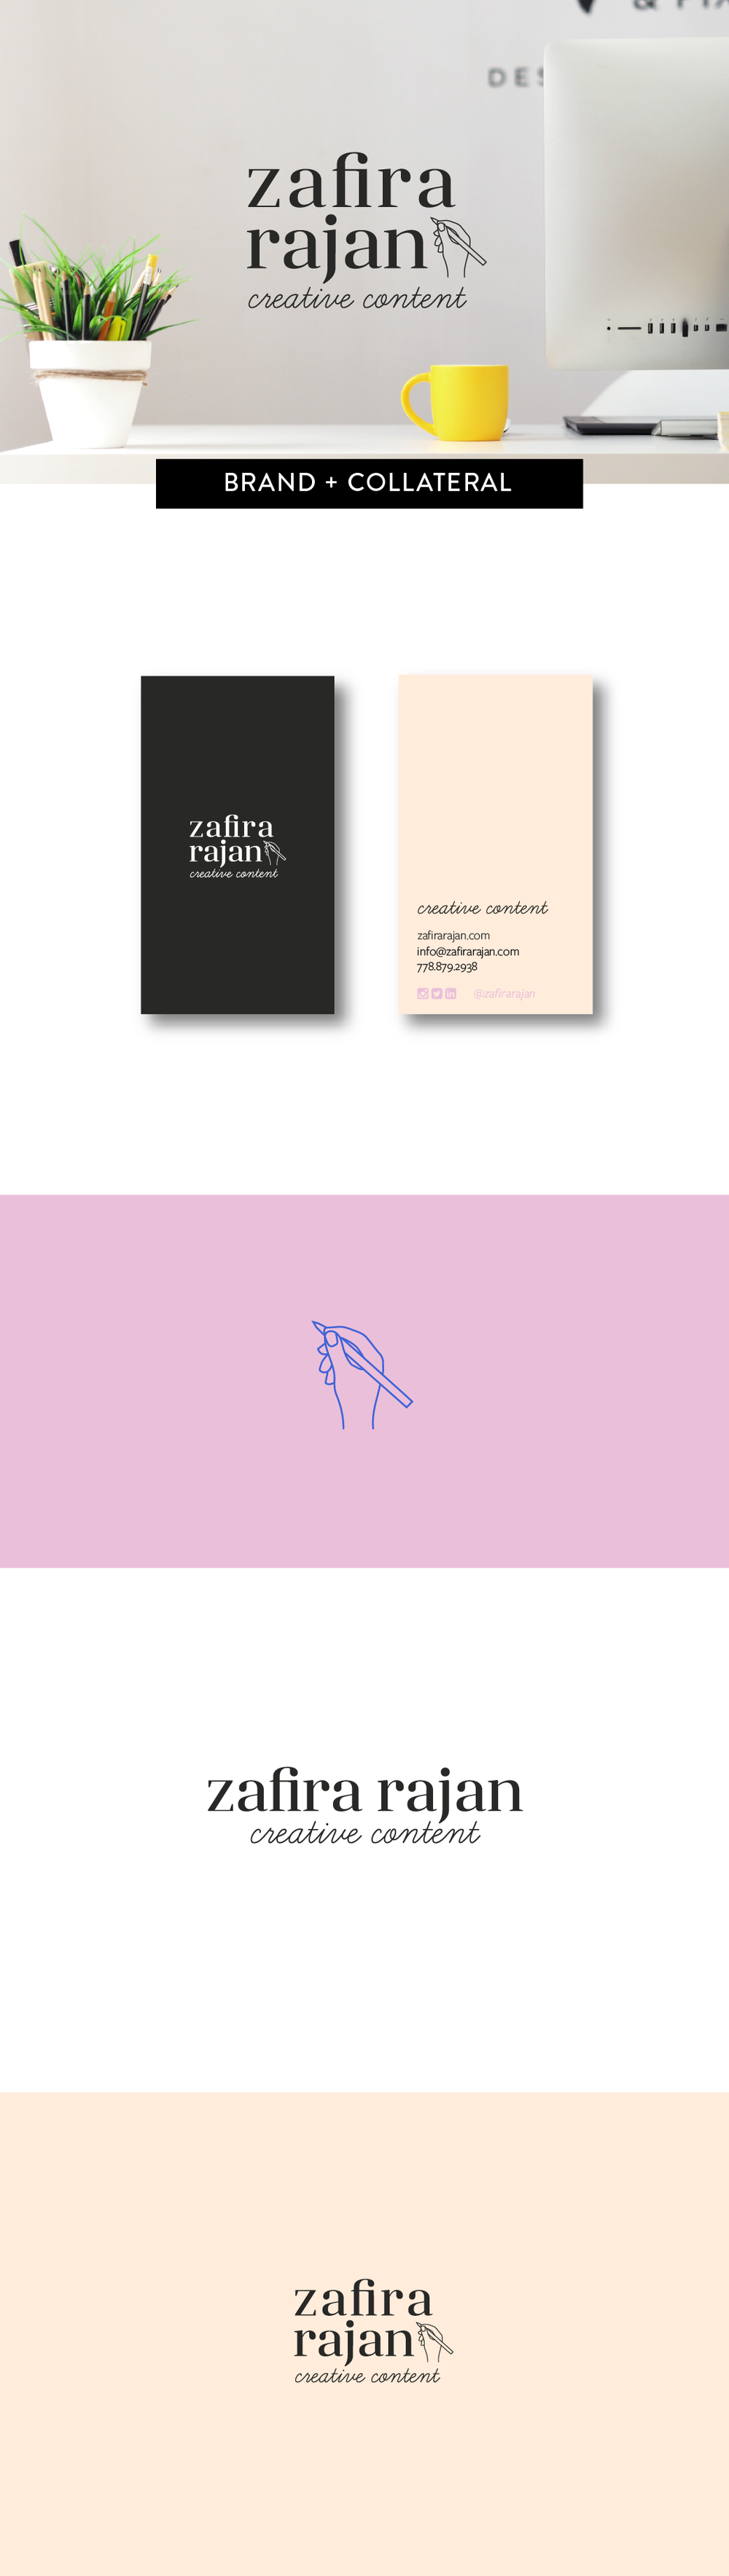 Brand Identity and print design for Zafira Rajan Communications by Salt Design Co.